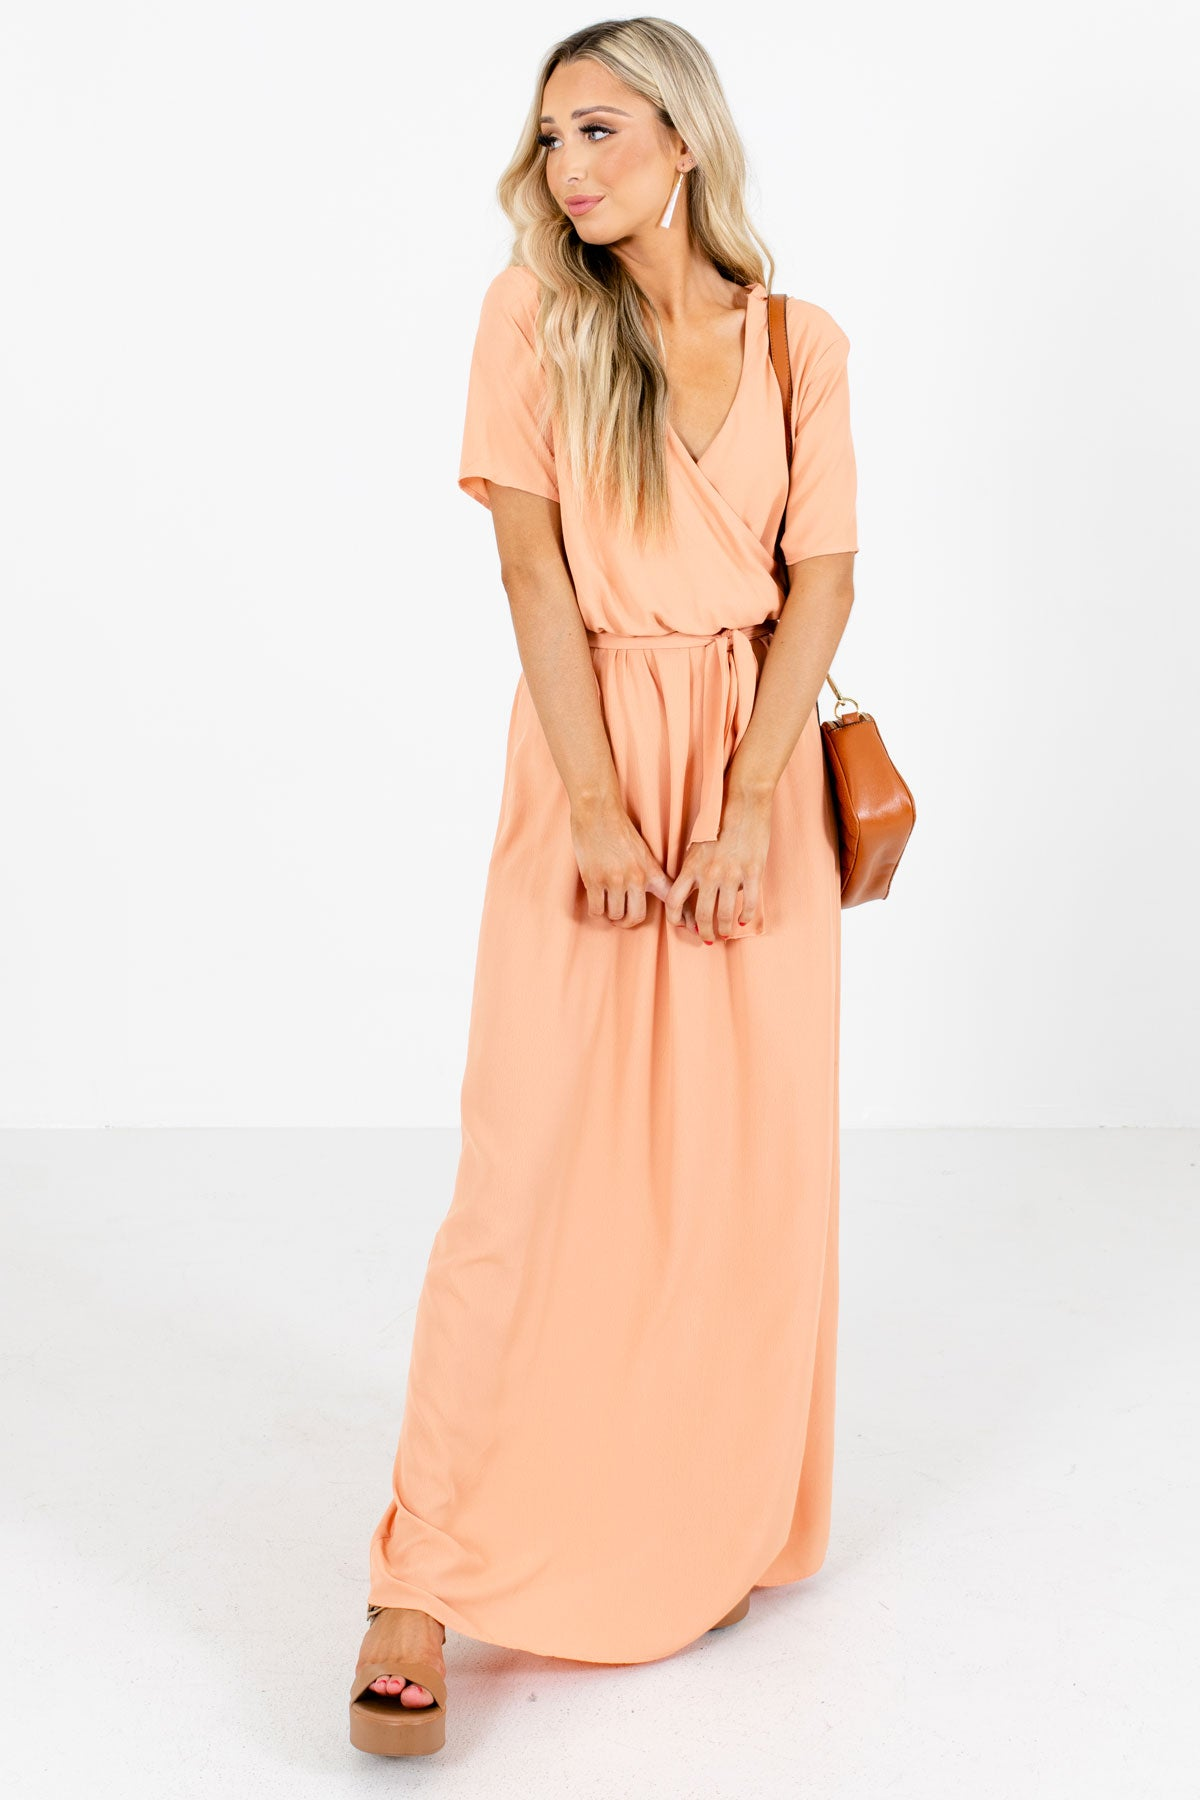 Peach Faux Wrap Style Boutique Maxi Dresses for Women